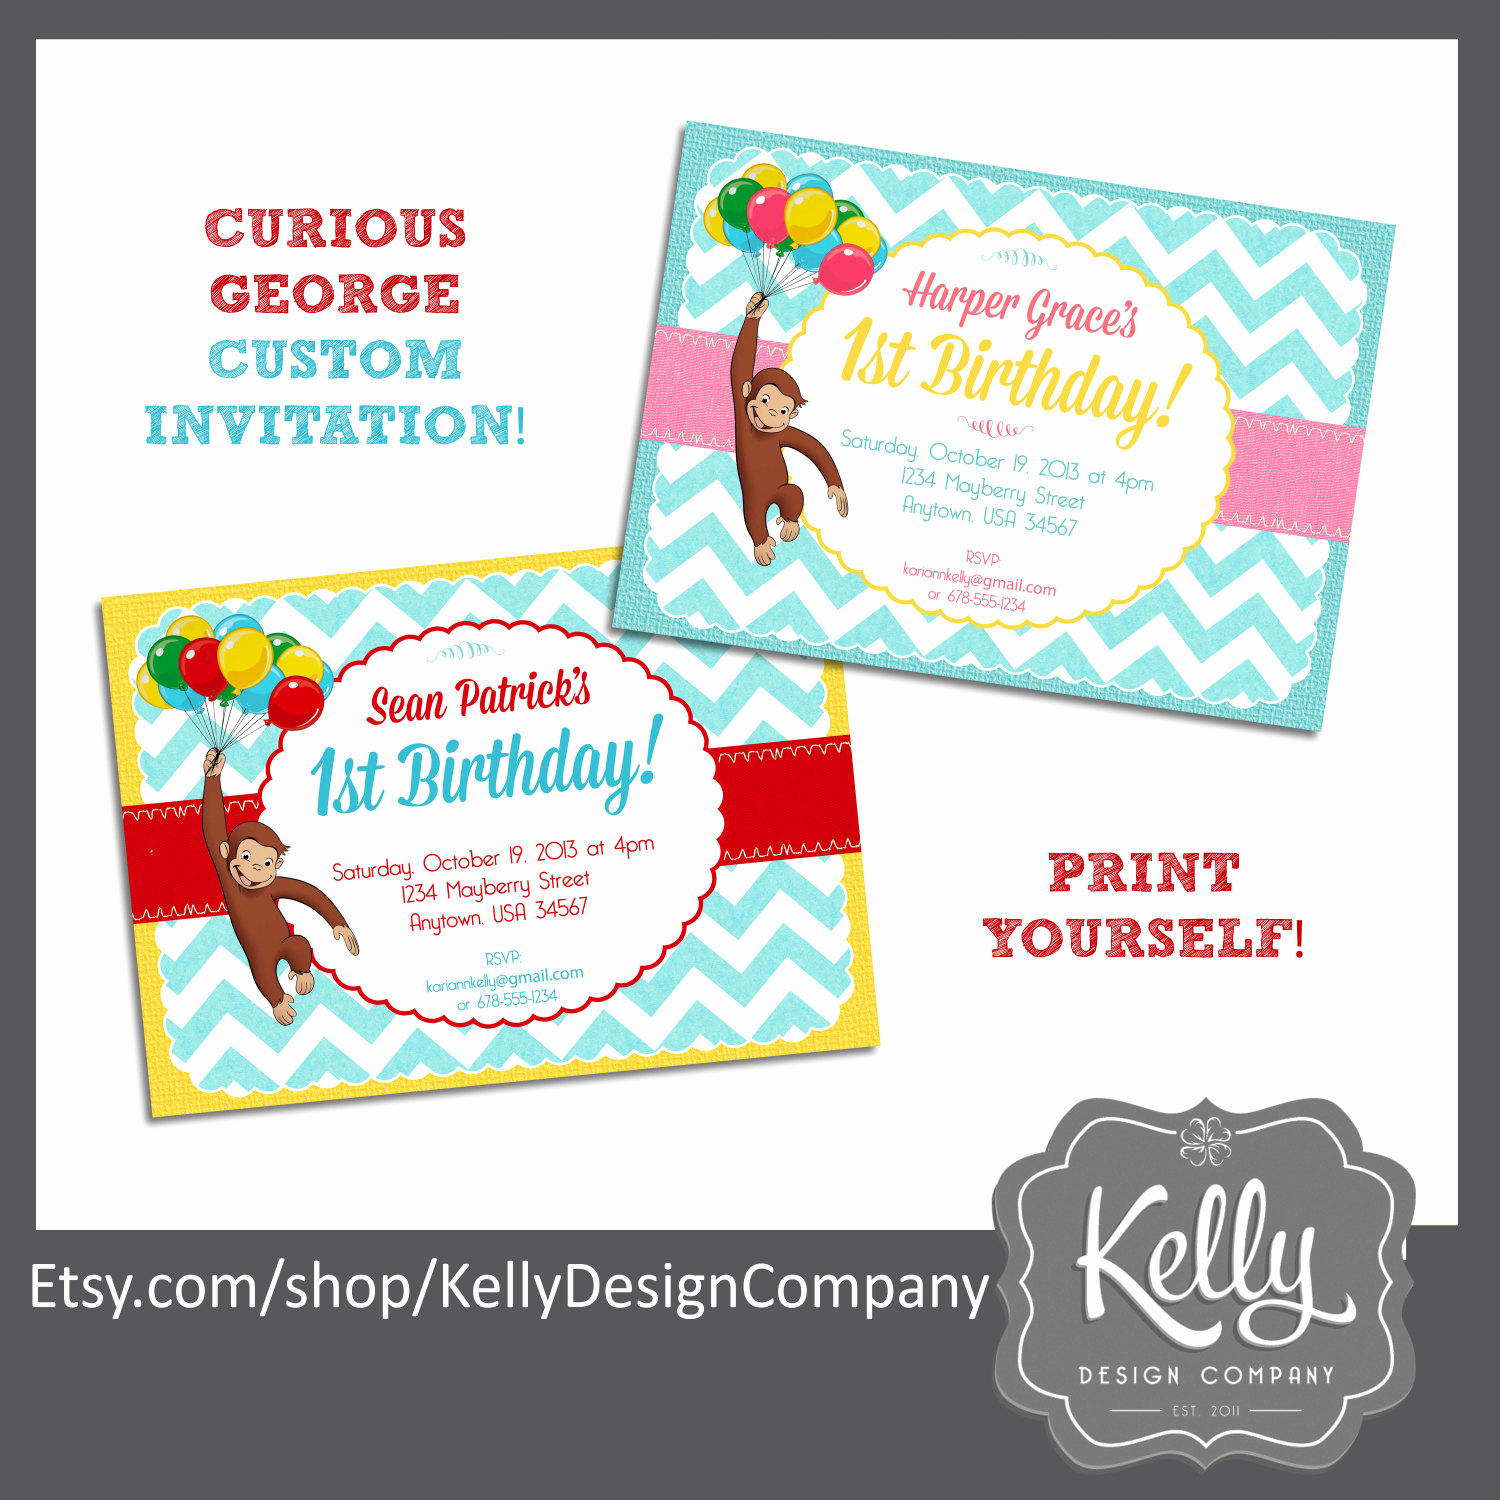 Curious George Birthday Invitation Beautiful Curious George Invitation Design Print Yourself Digital File